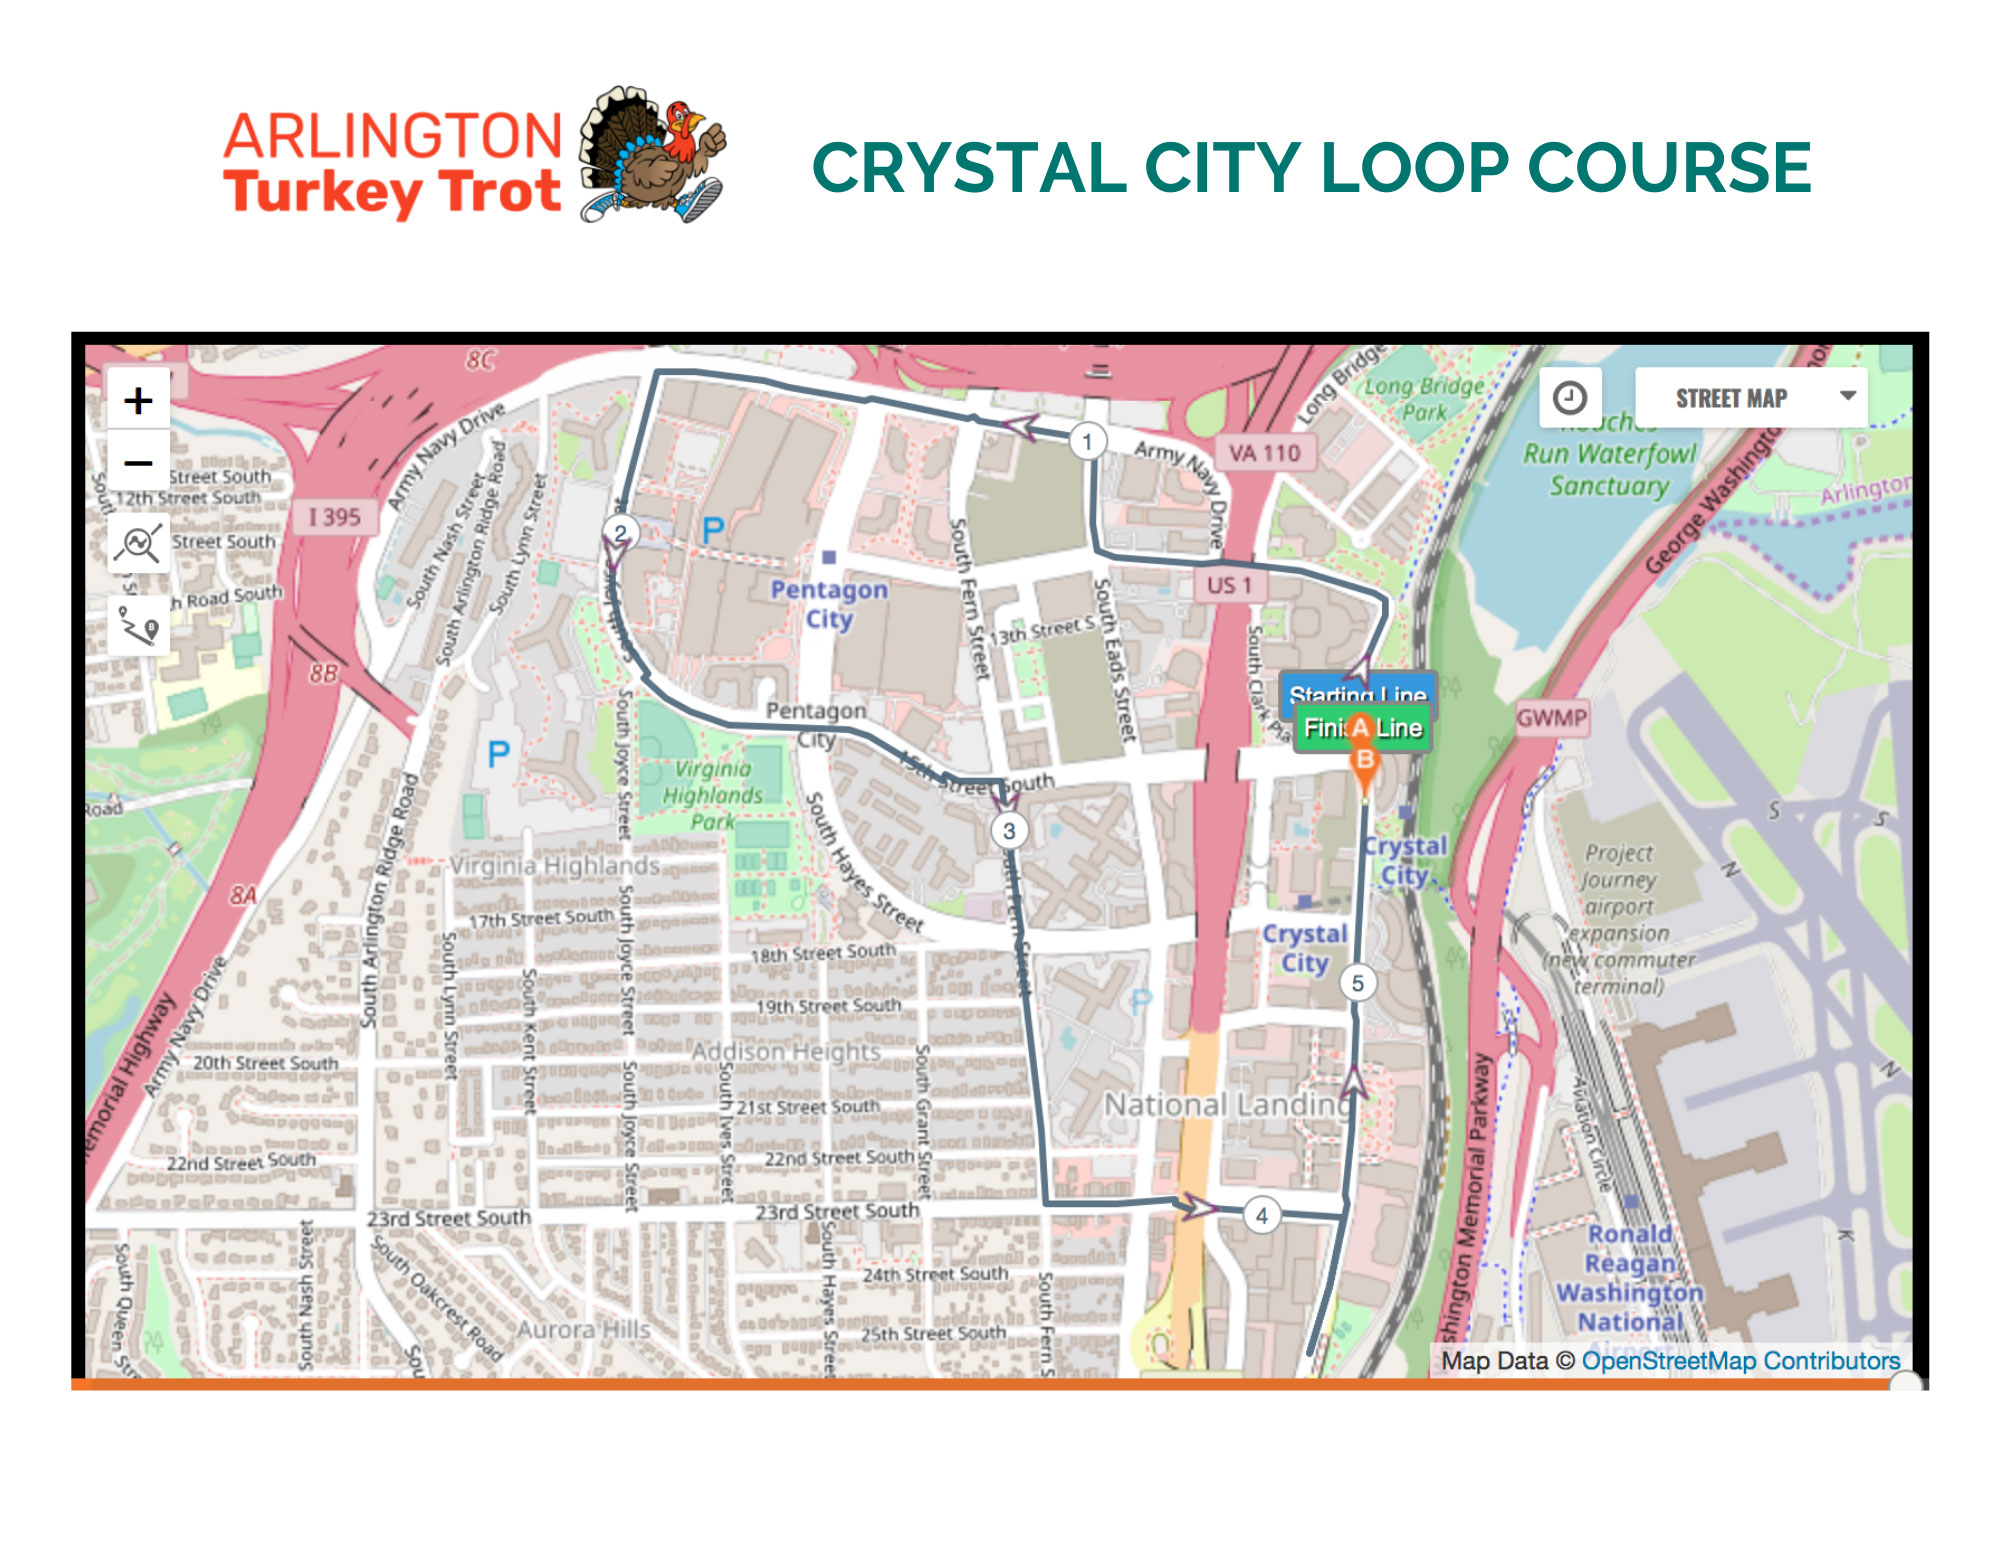 arlington-va-turkey-trot-crystal-city-course-map